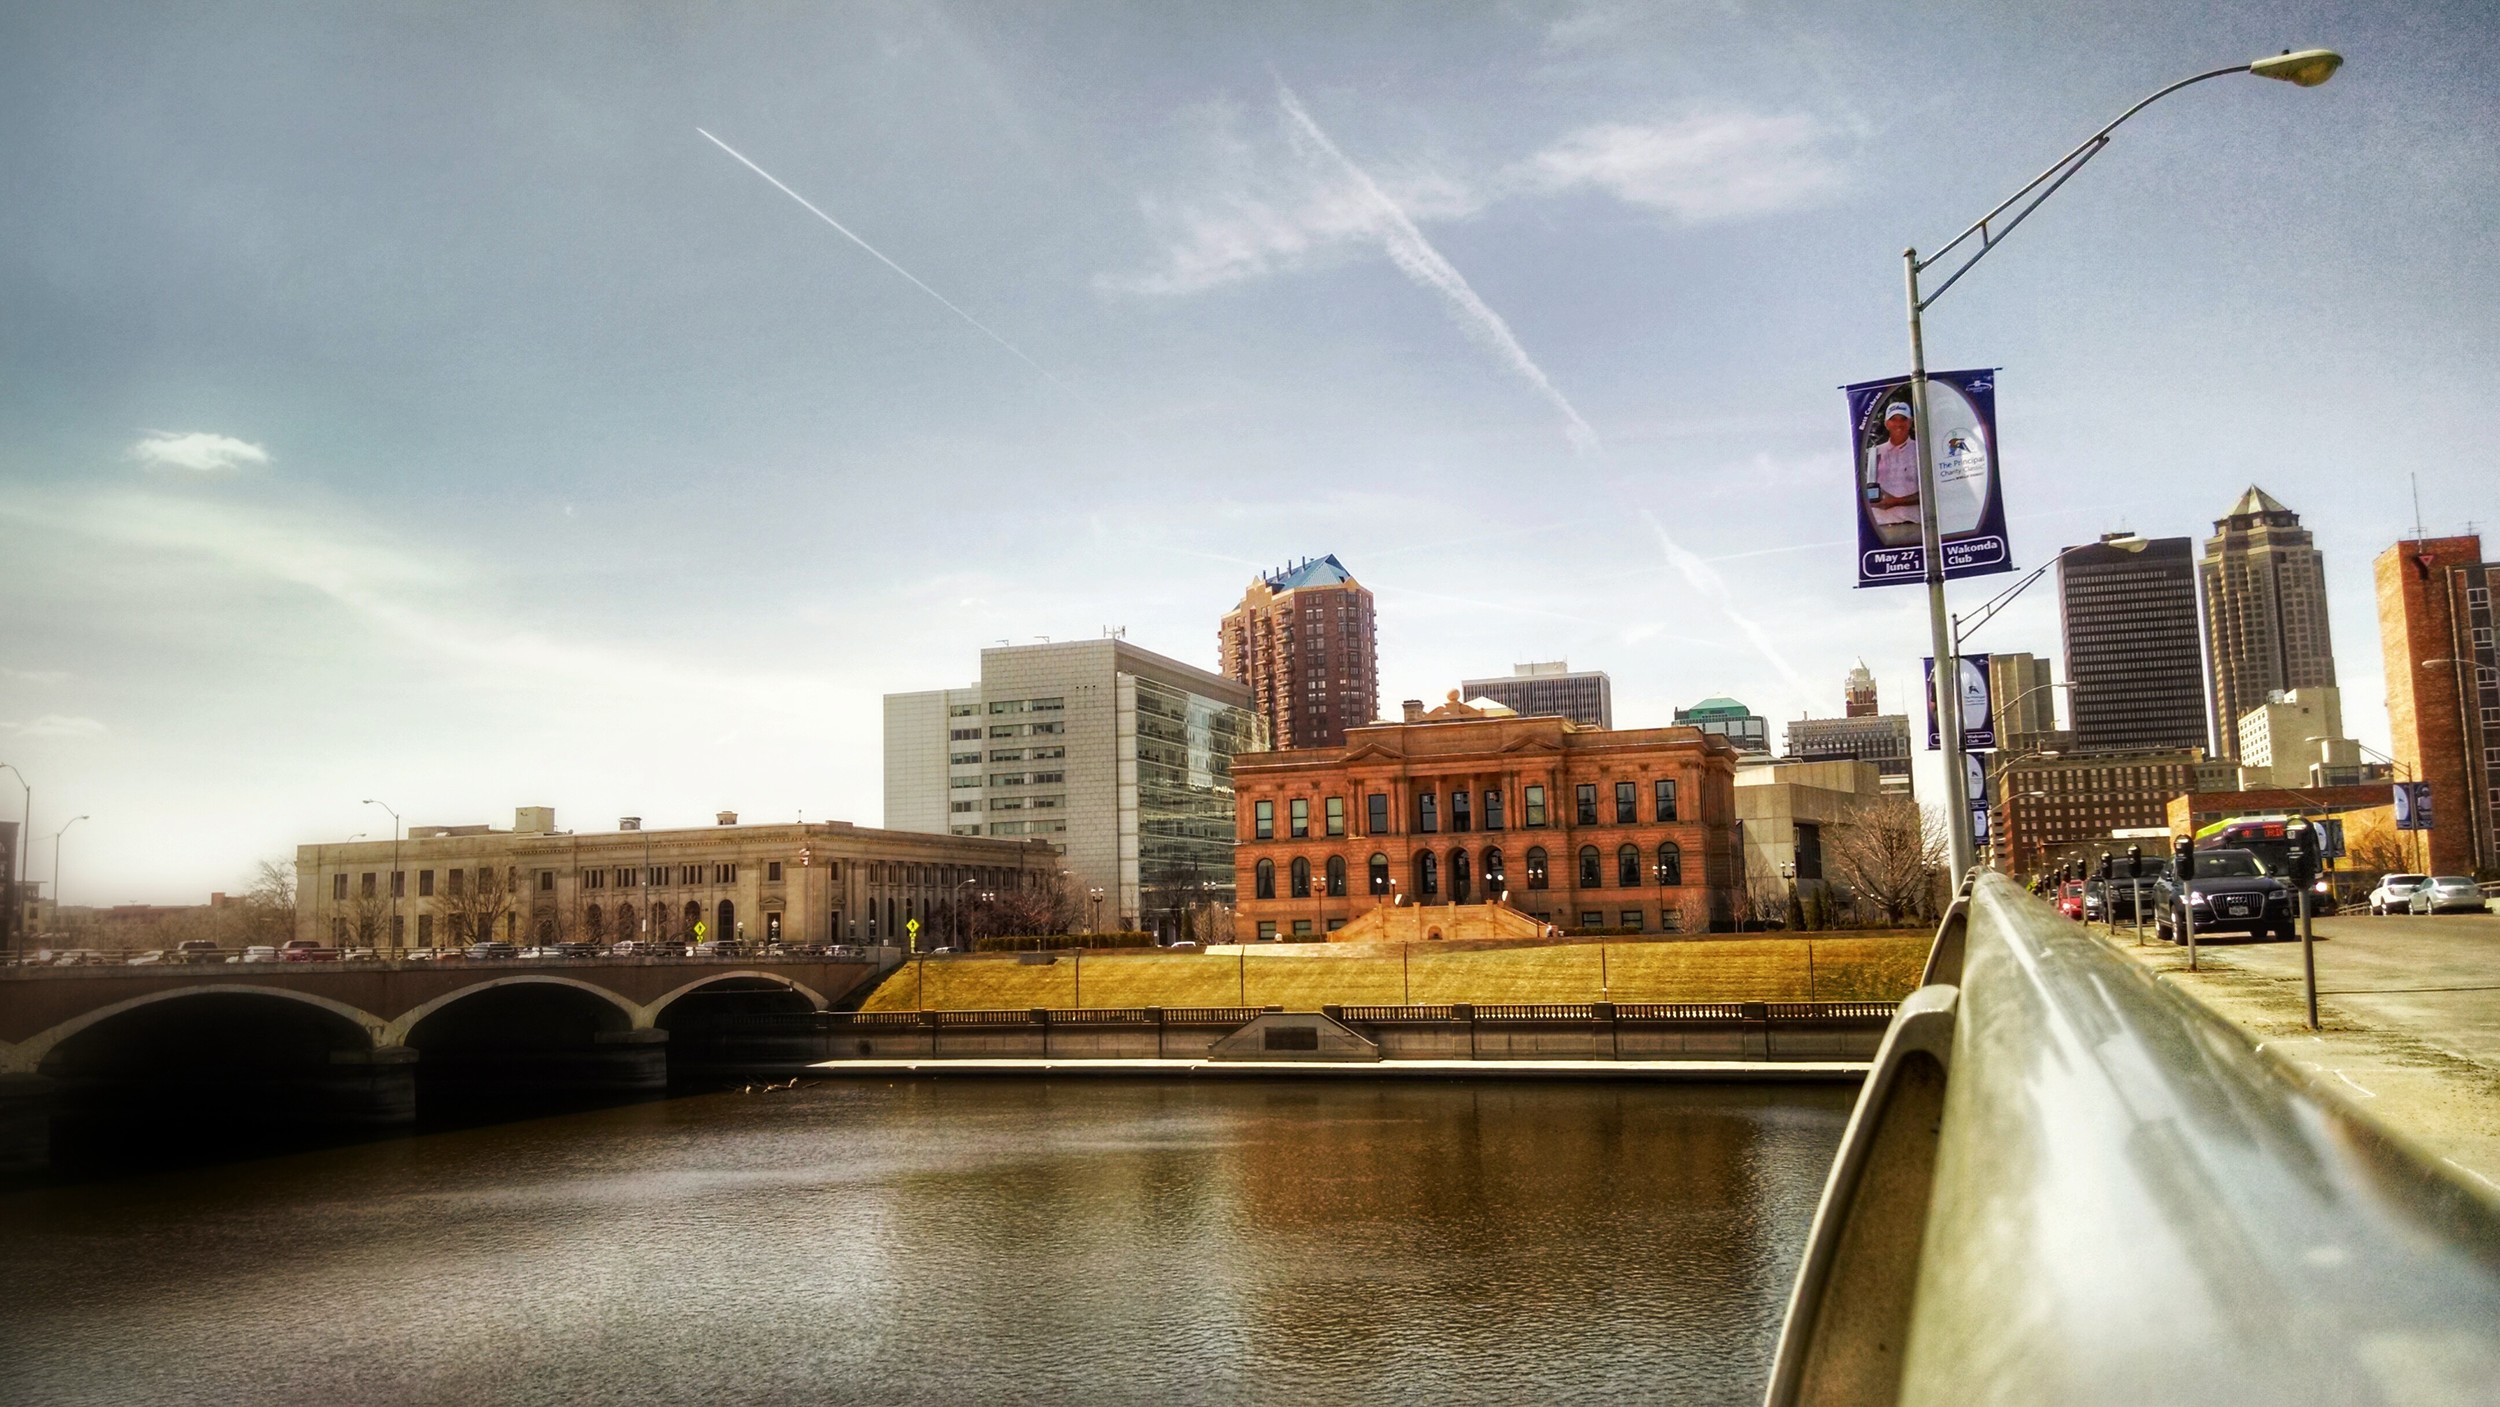 On the river in Des Moines, Iowa